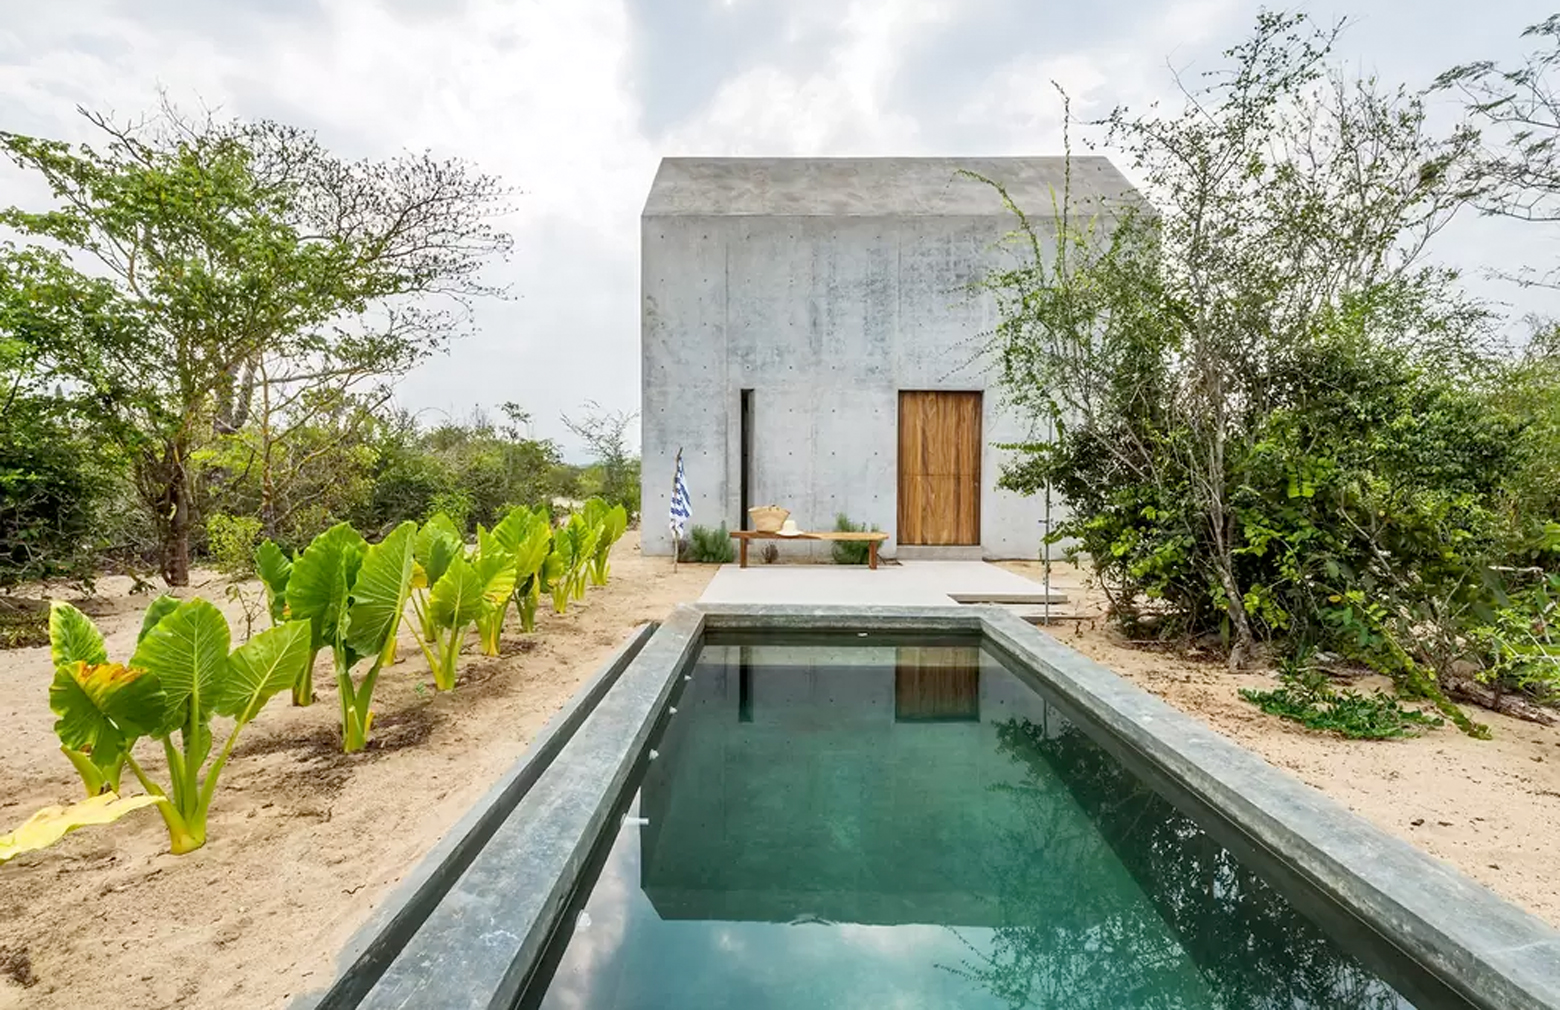 Rental of the week a concrete cabin in oaxaca mexico for Piani casa micro cottage